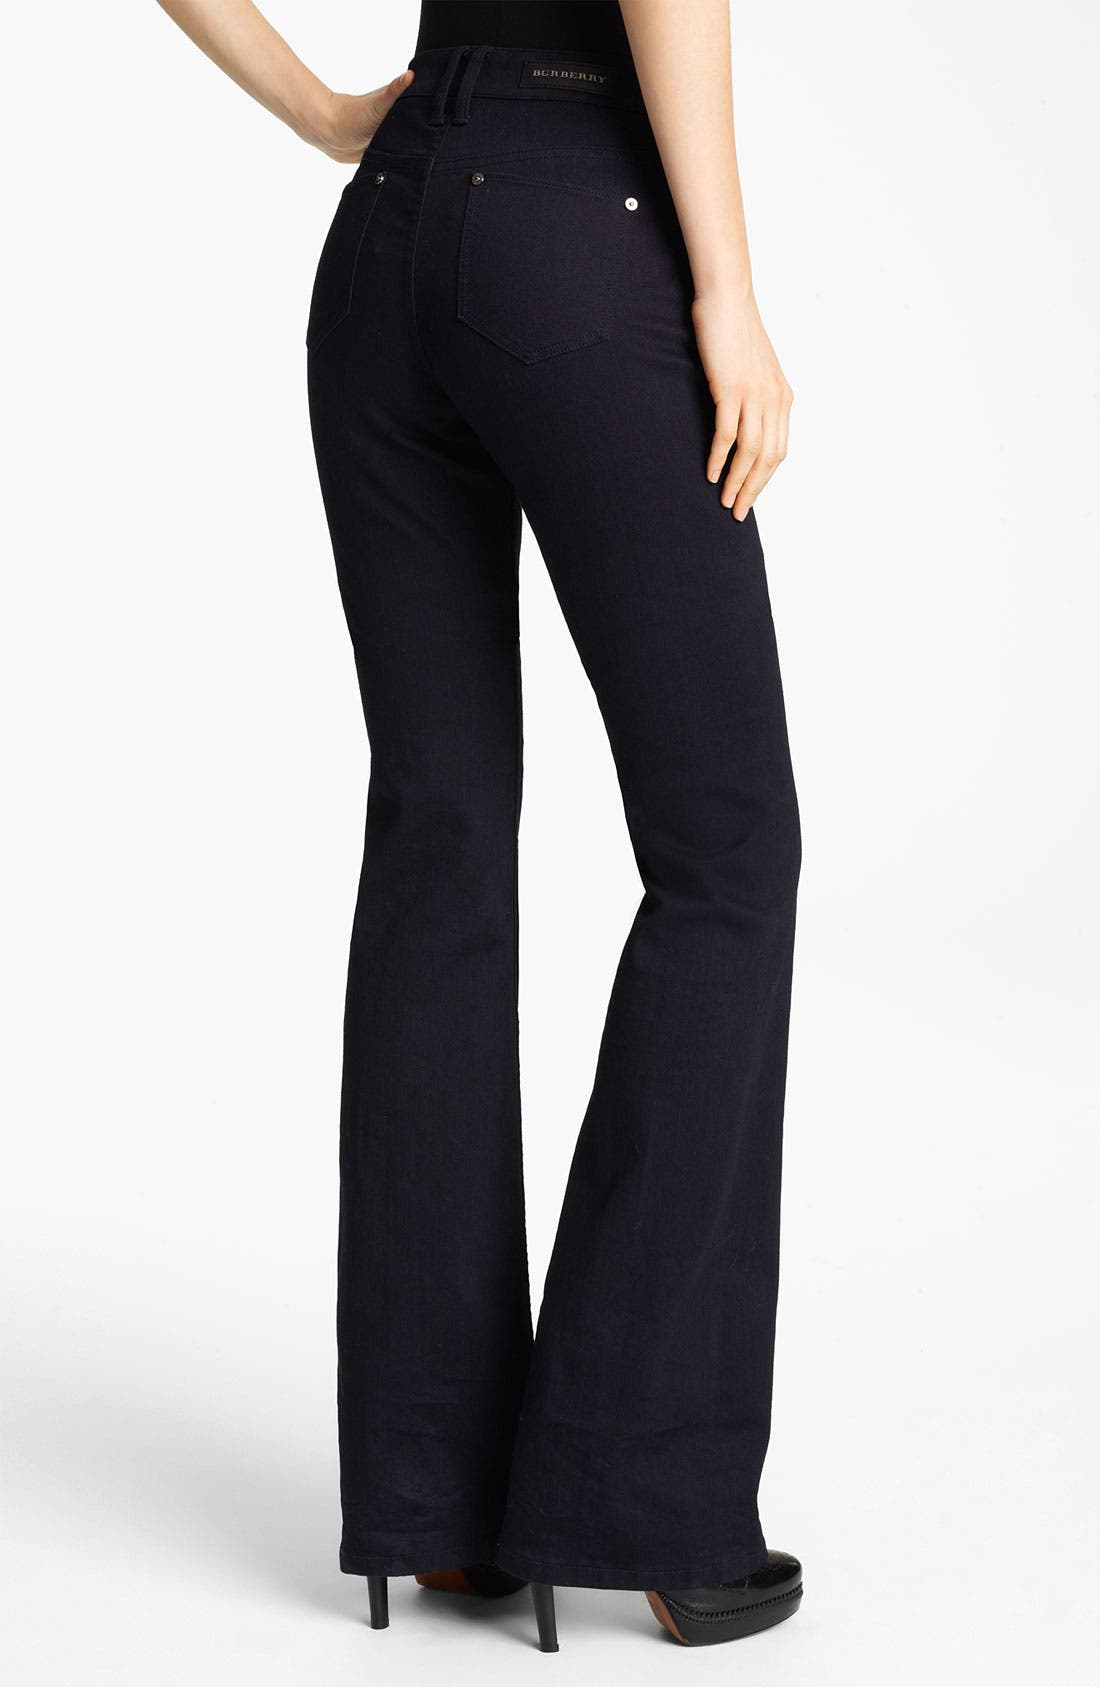 Alternate Image 2  - Burberry London Flare Leg Stretch Jeans